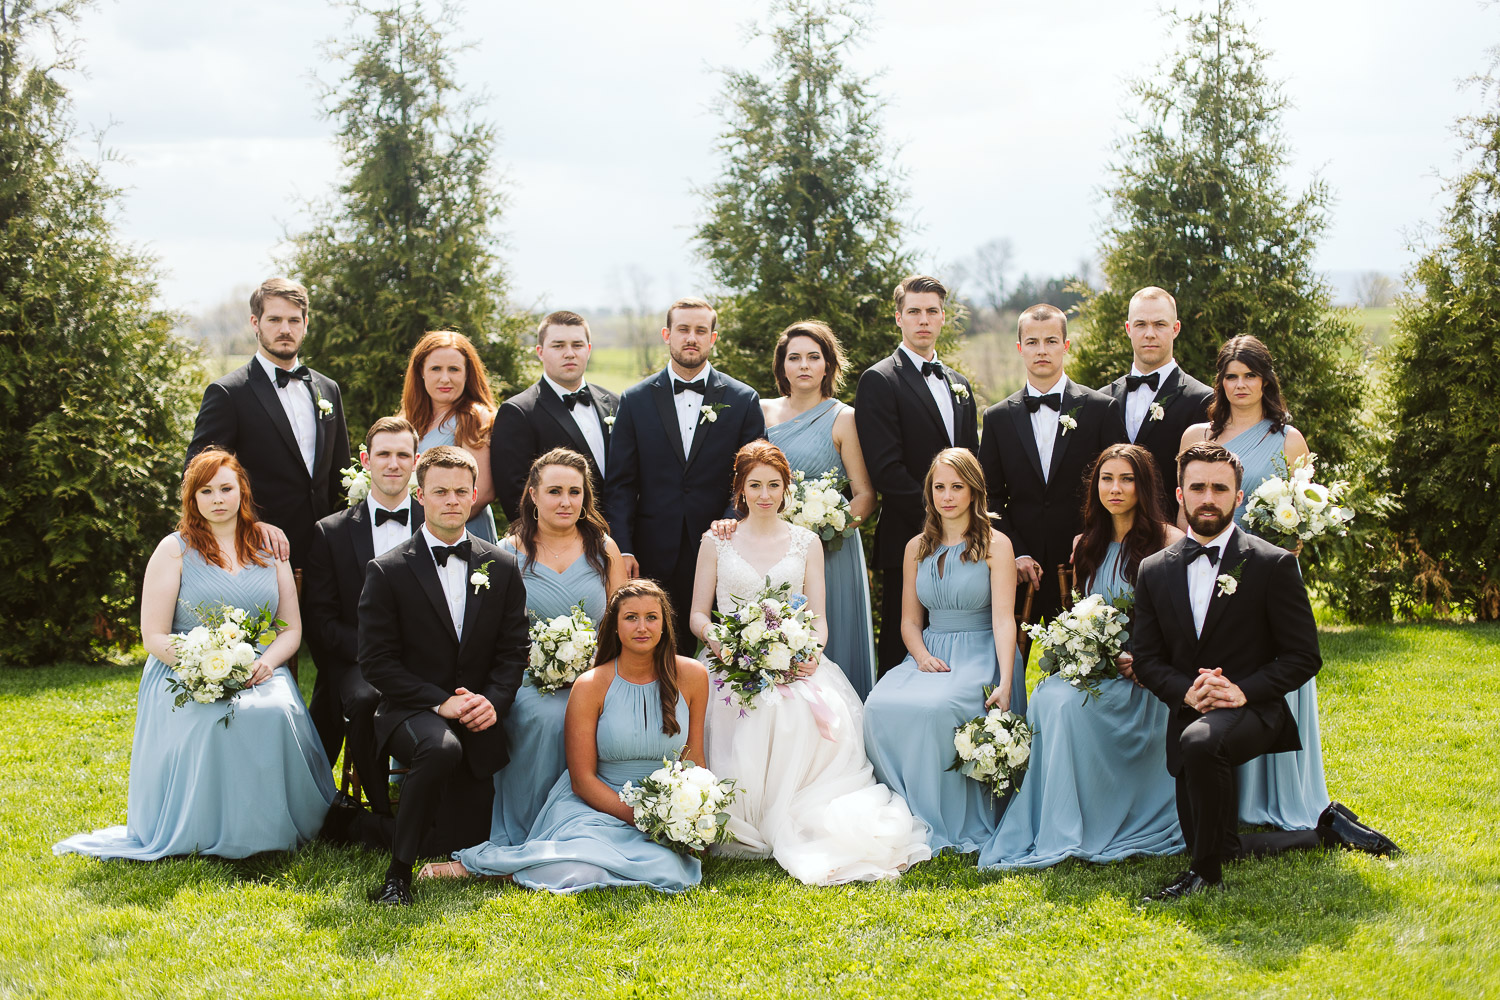 bridal party wearing light blue